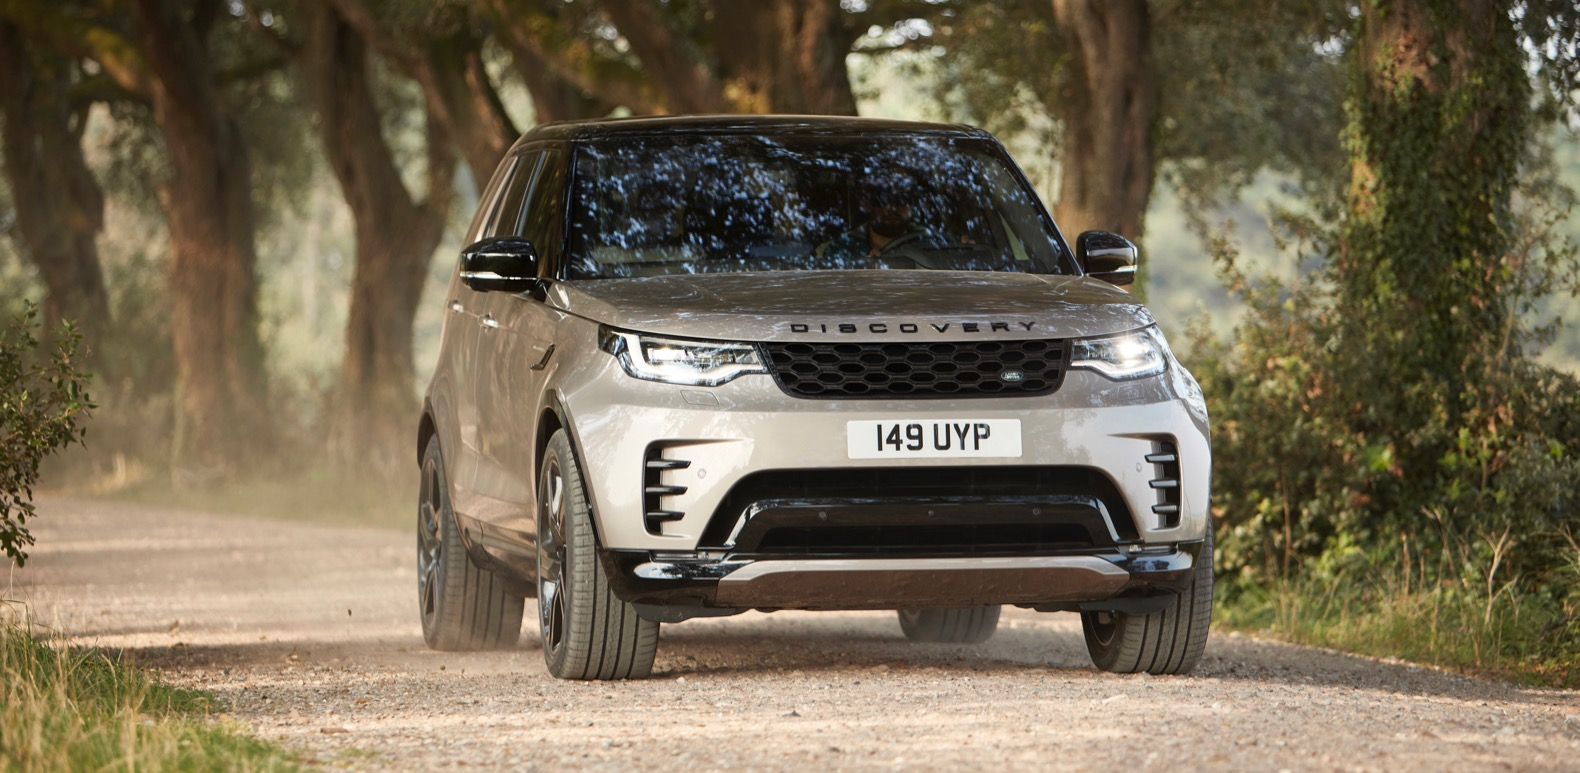 2021 Land Rover Discovery gets a facelift